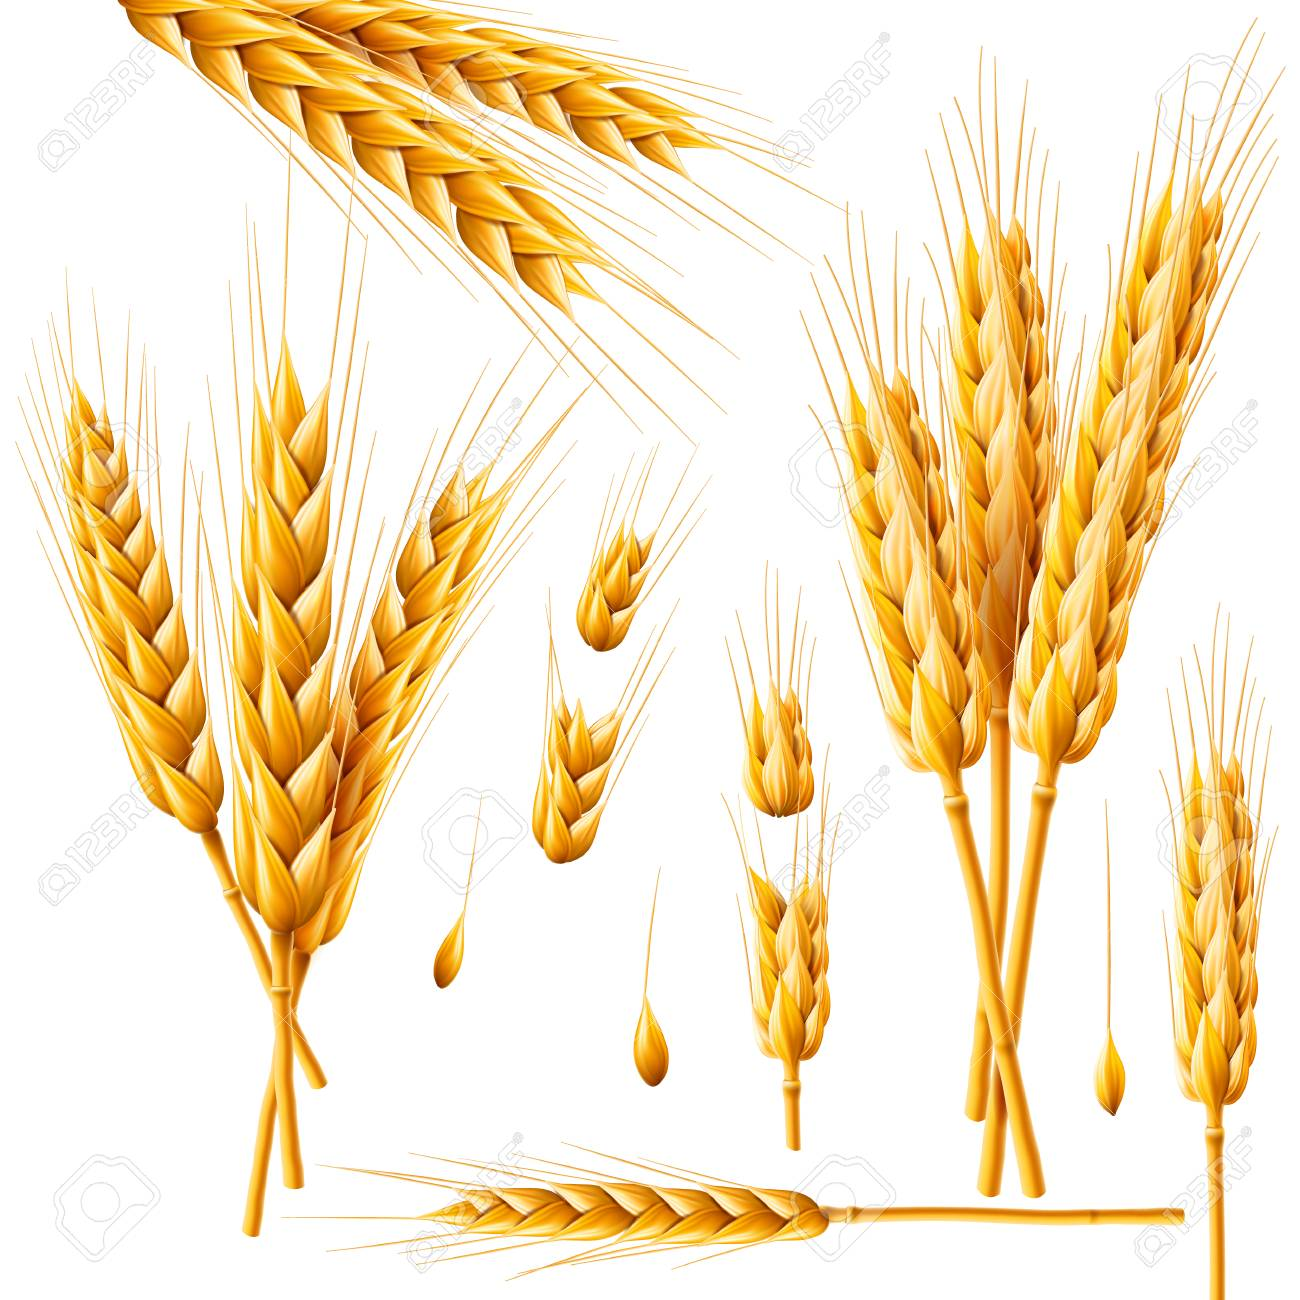 Realistic bunch of wheat, oats or barley isolated on white background. Vector set of wheat ears. Grains of cereals. Harvest, agriculture or bakery theme. Natural ingredient element. 3d illustration. - 97278300